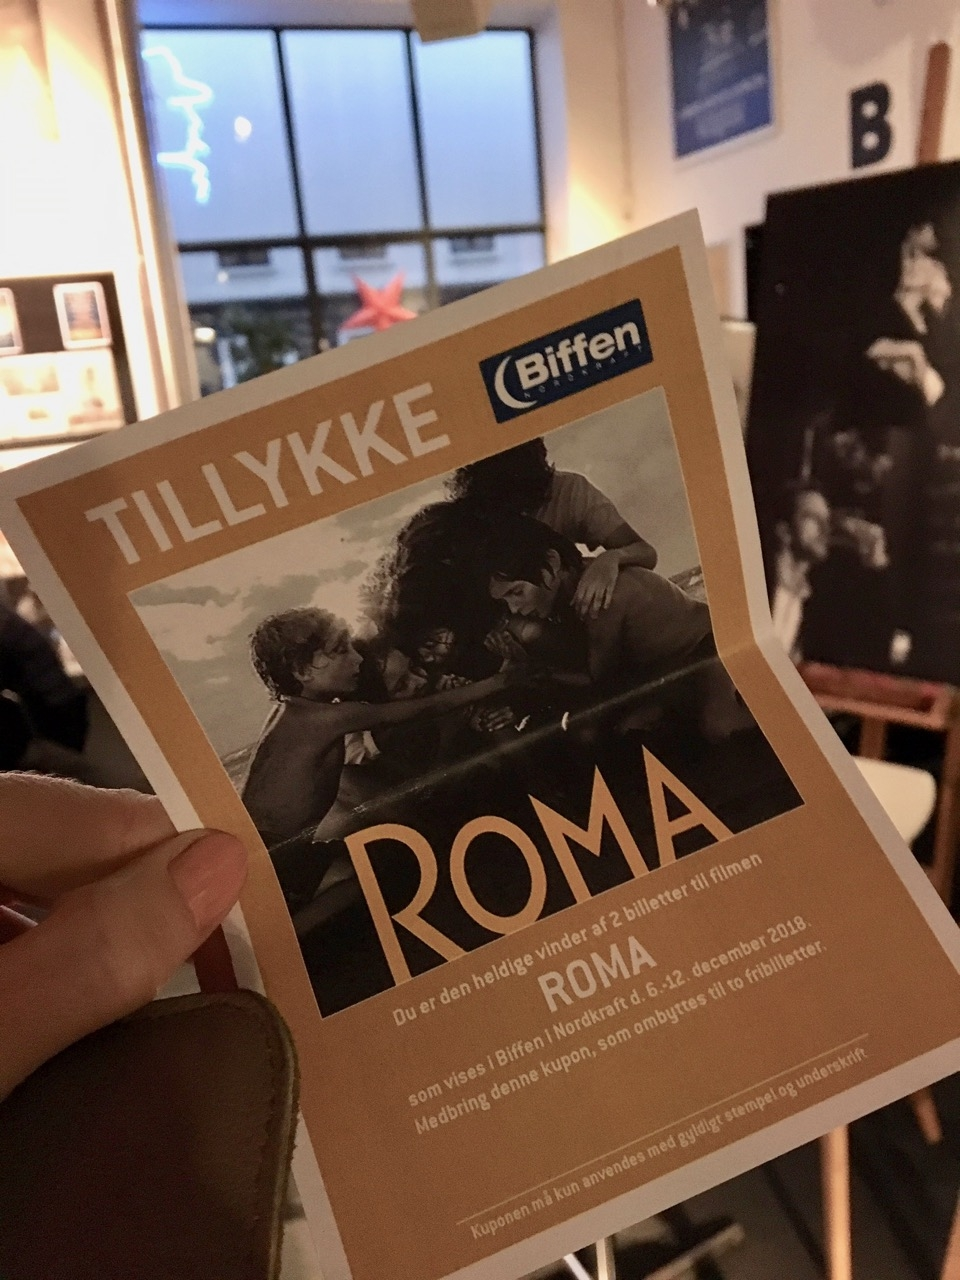 Roma_movie_biffen_nordkraft